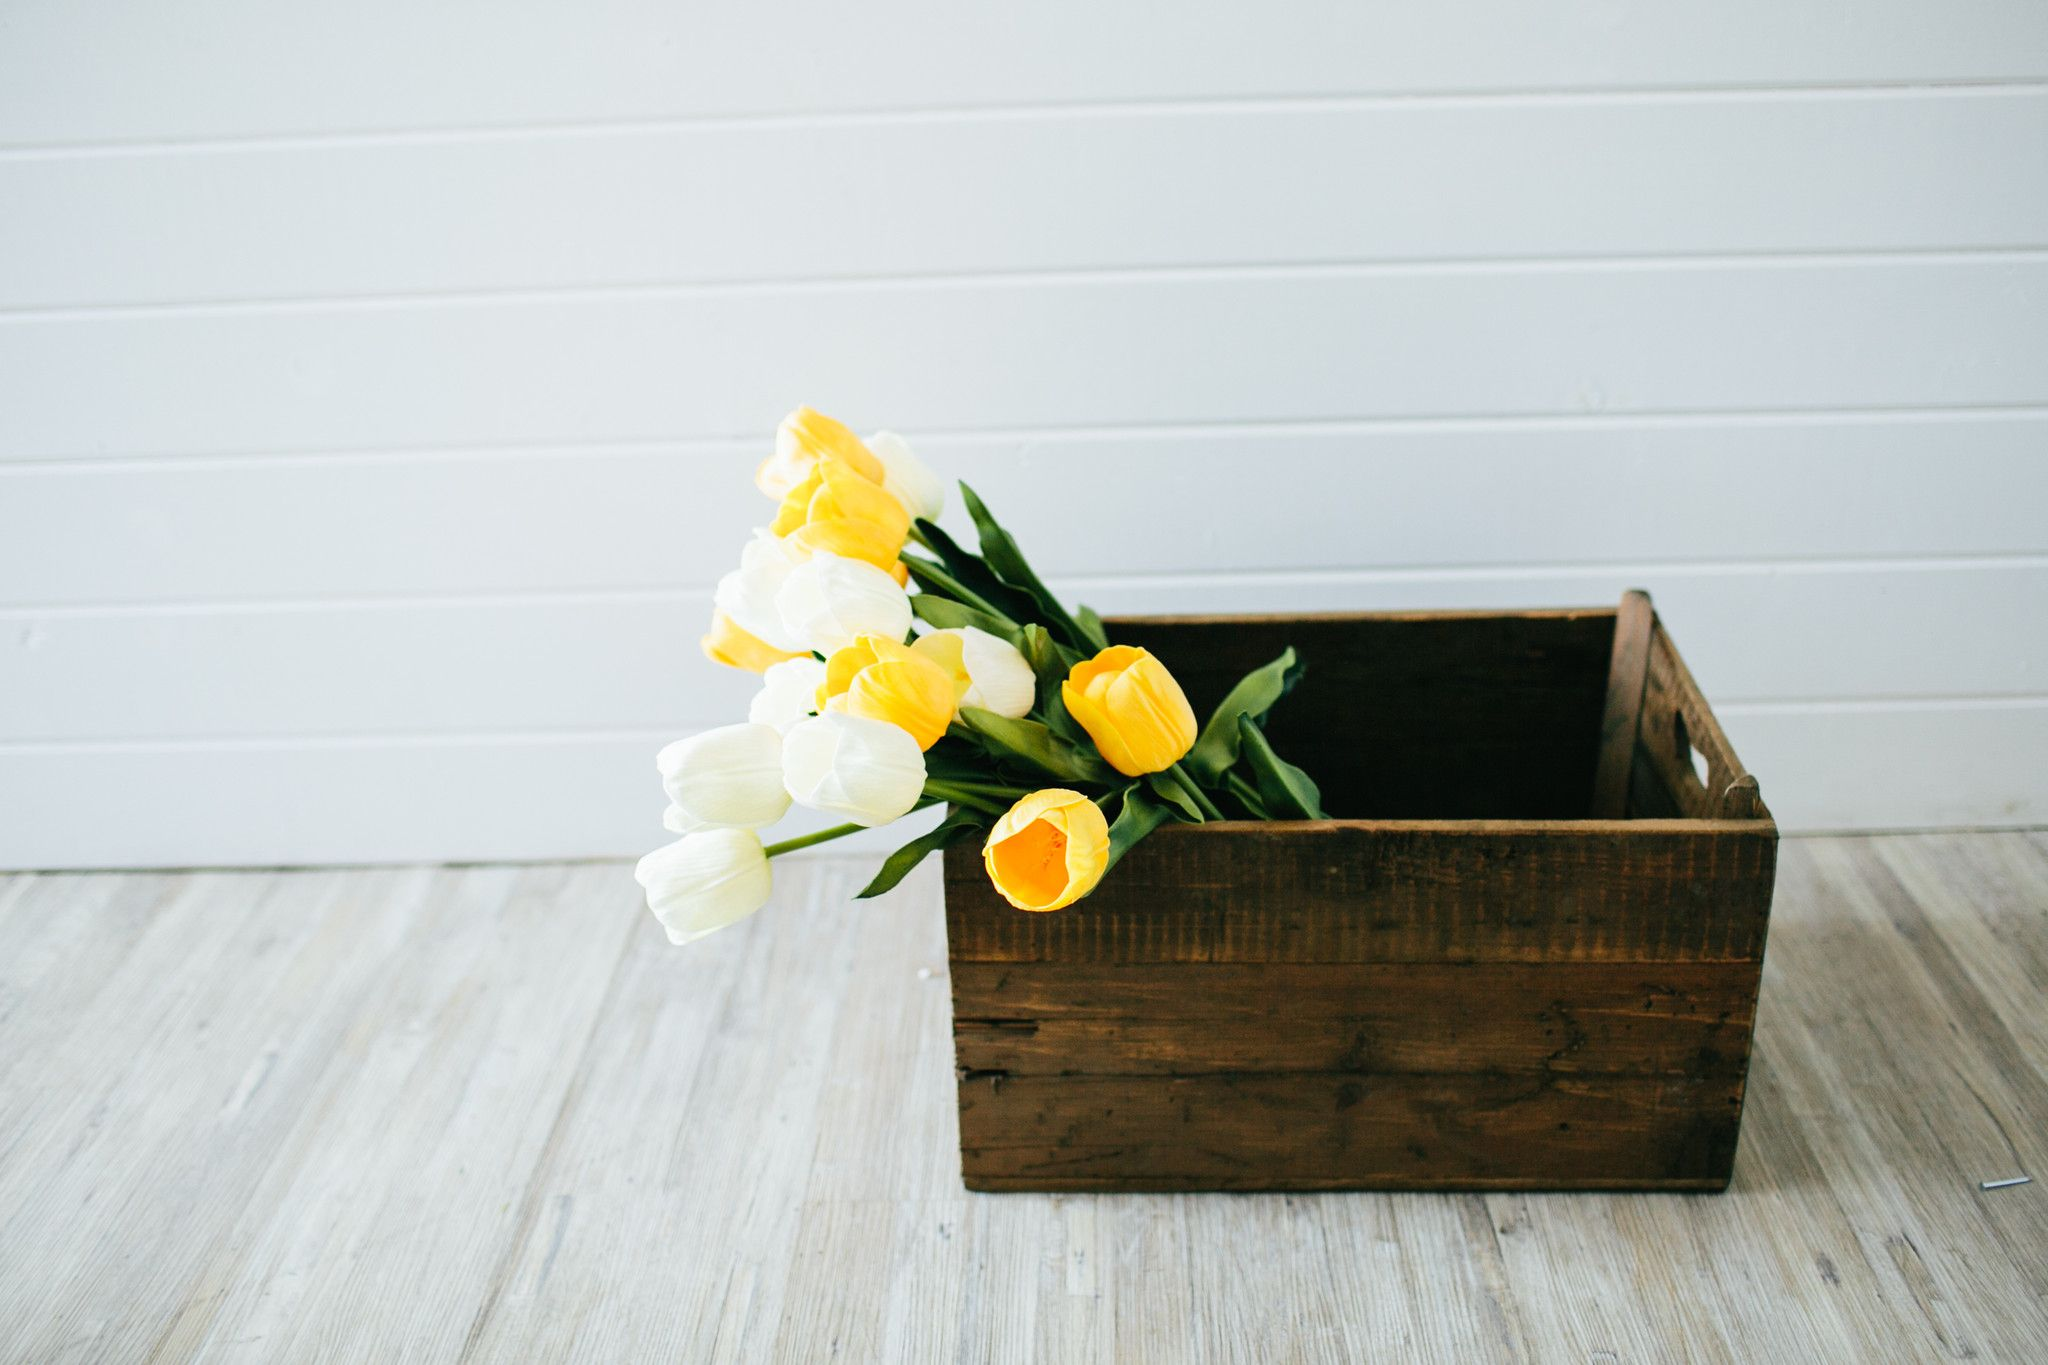 Vintage style produce crate crates vintage and storage ideas